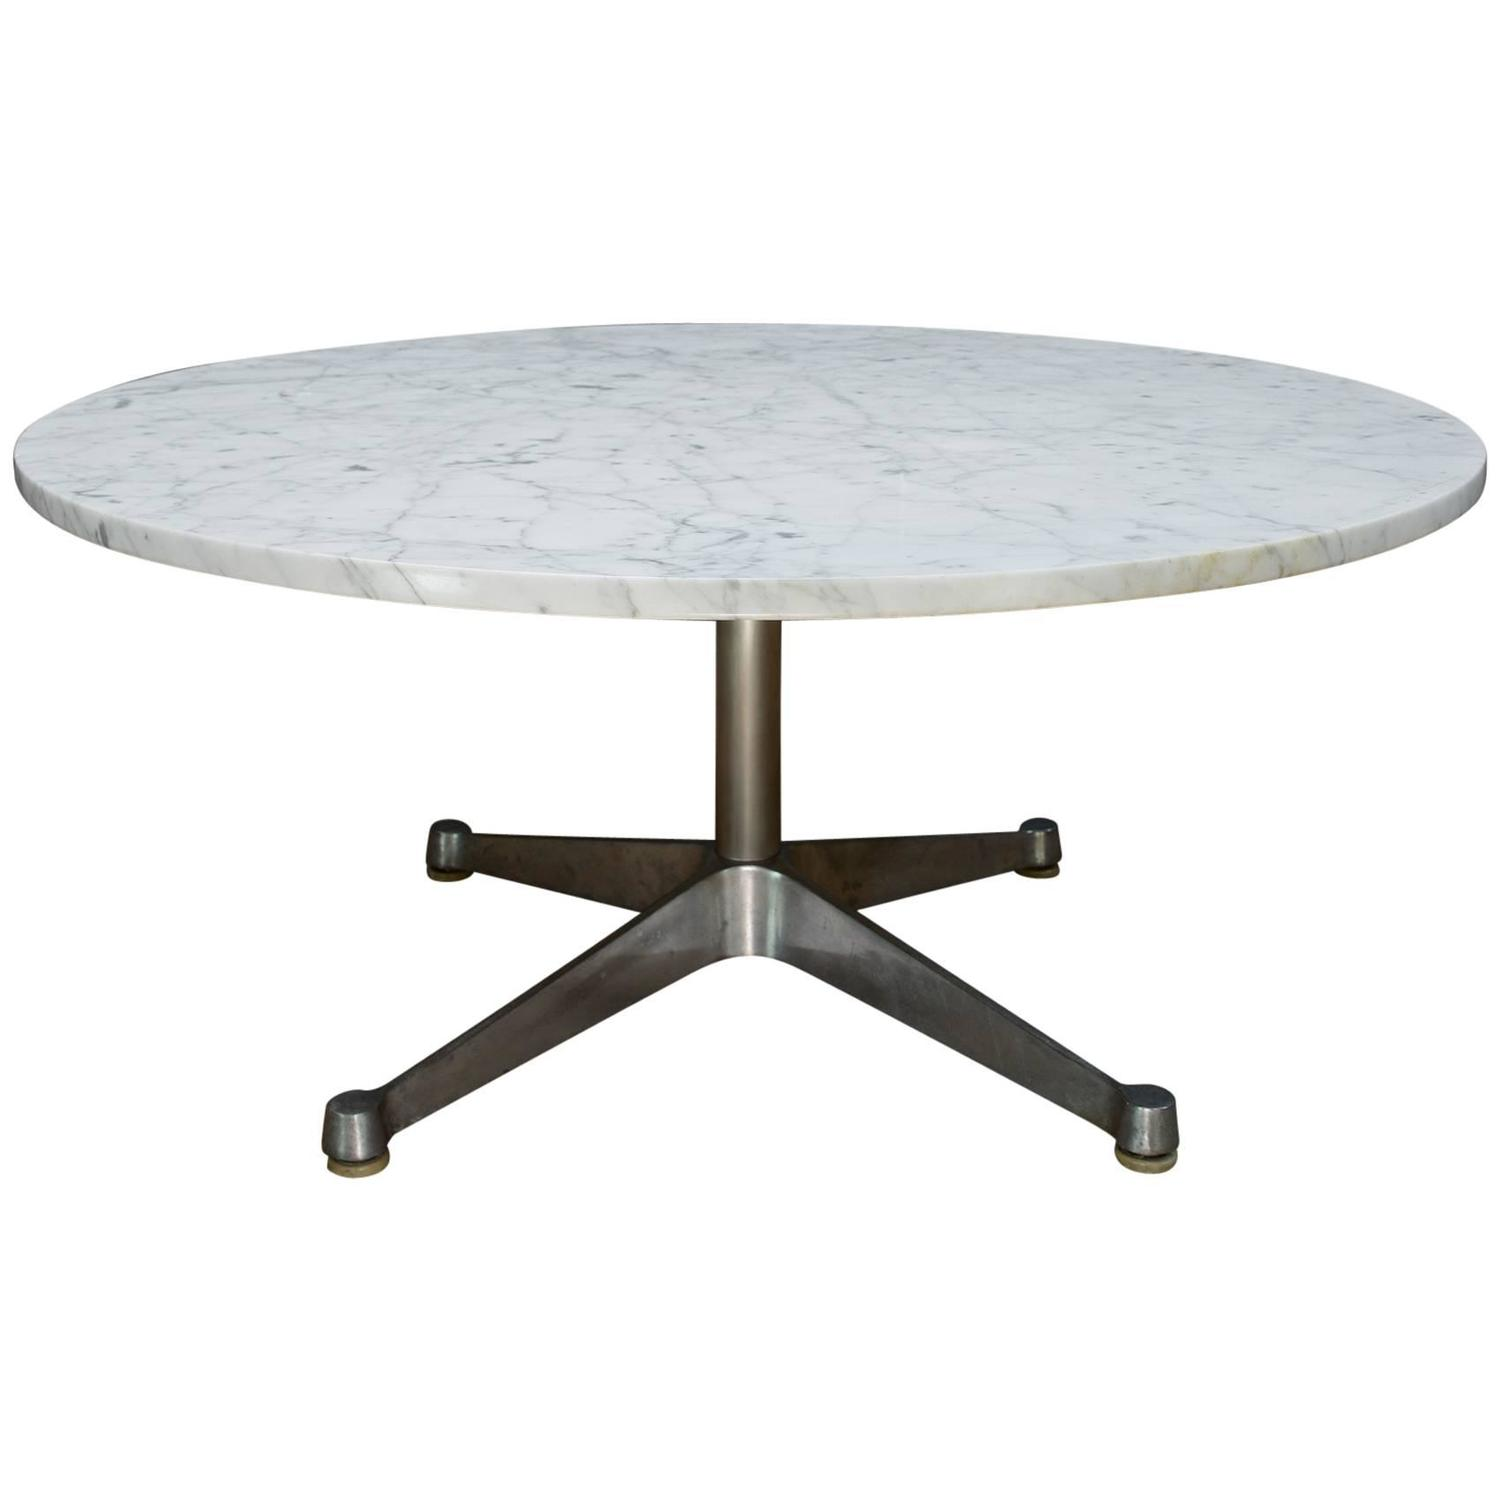 Eames Coffee Table Square: Eames Herman Miller Carrara Marble Cocktail Table At 1stdibs